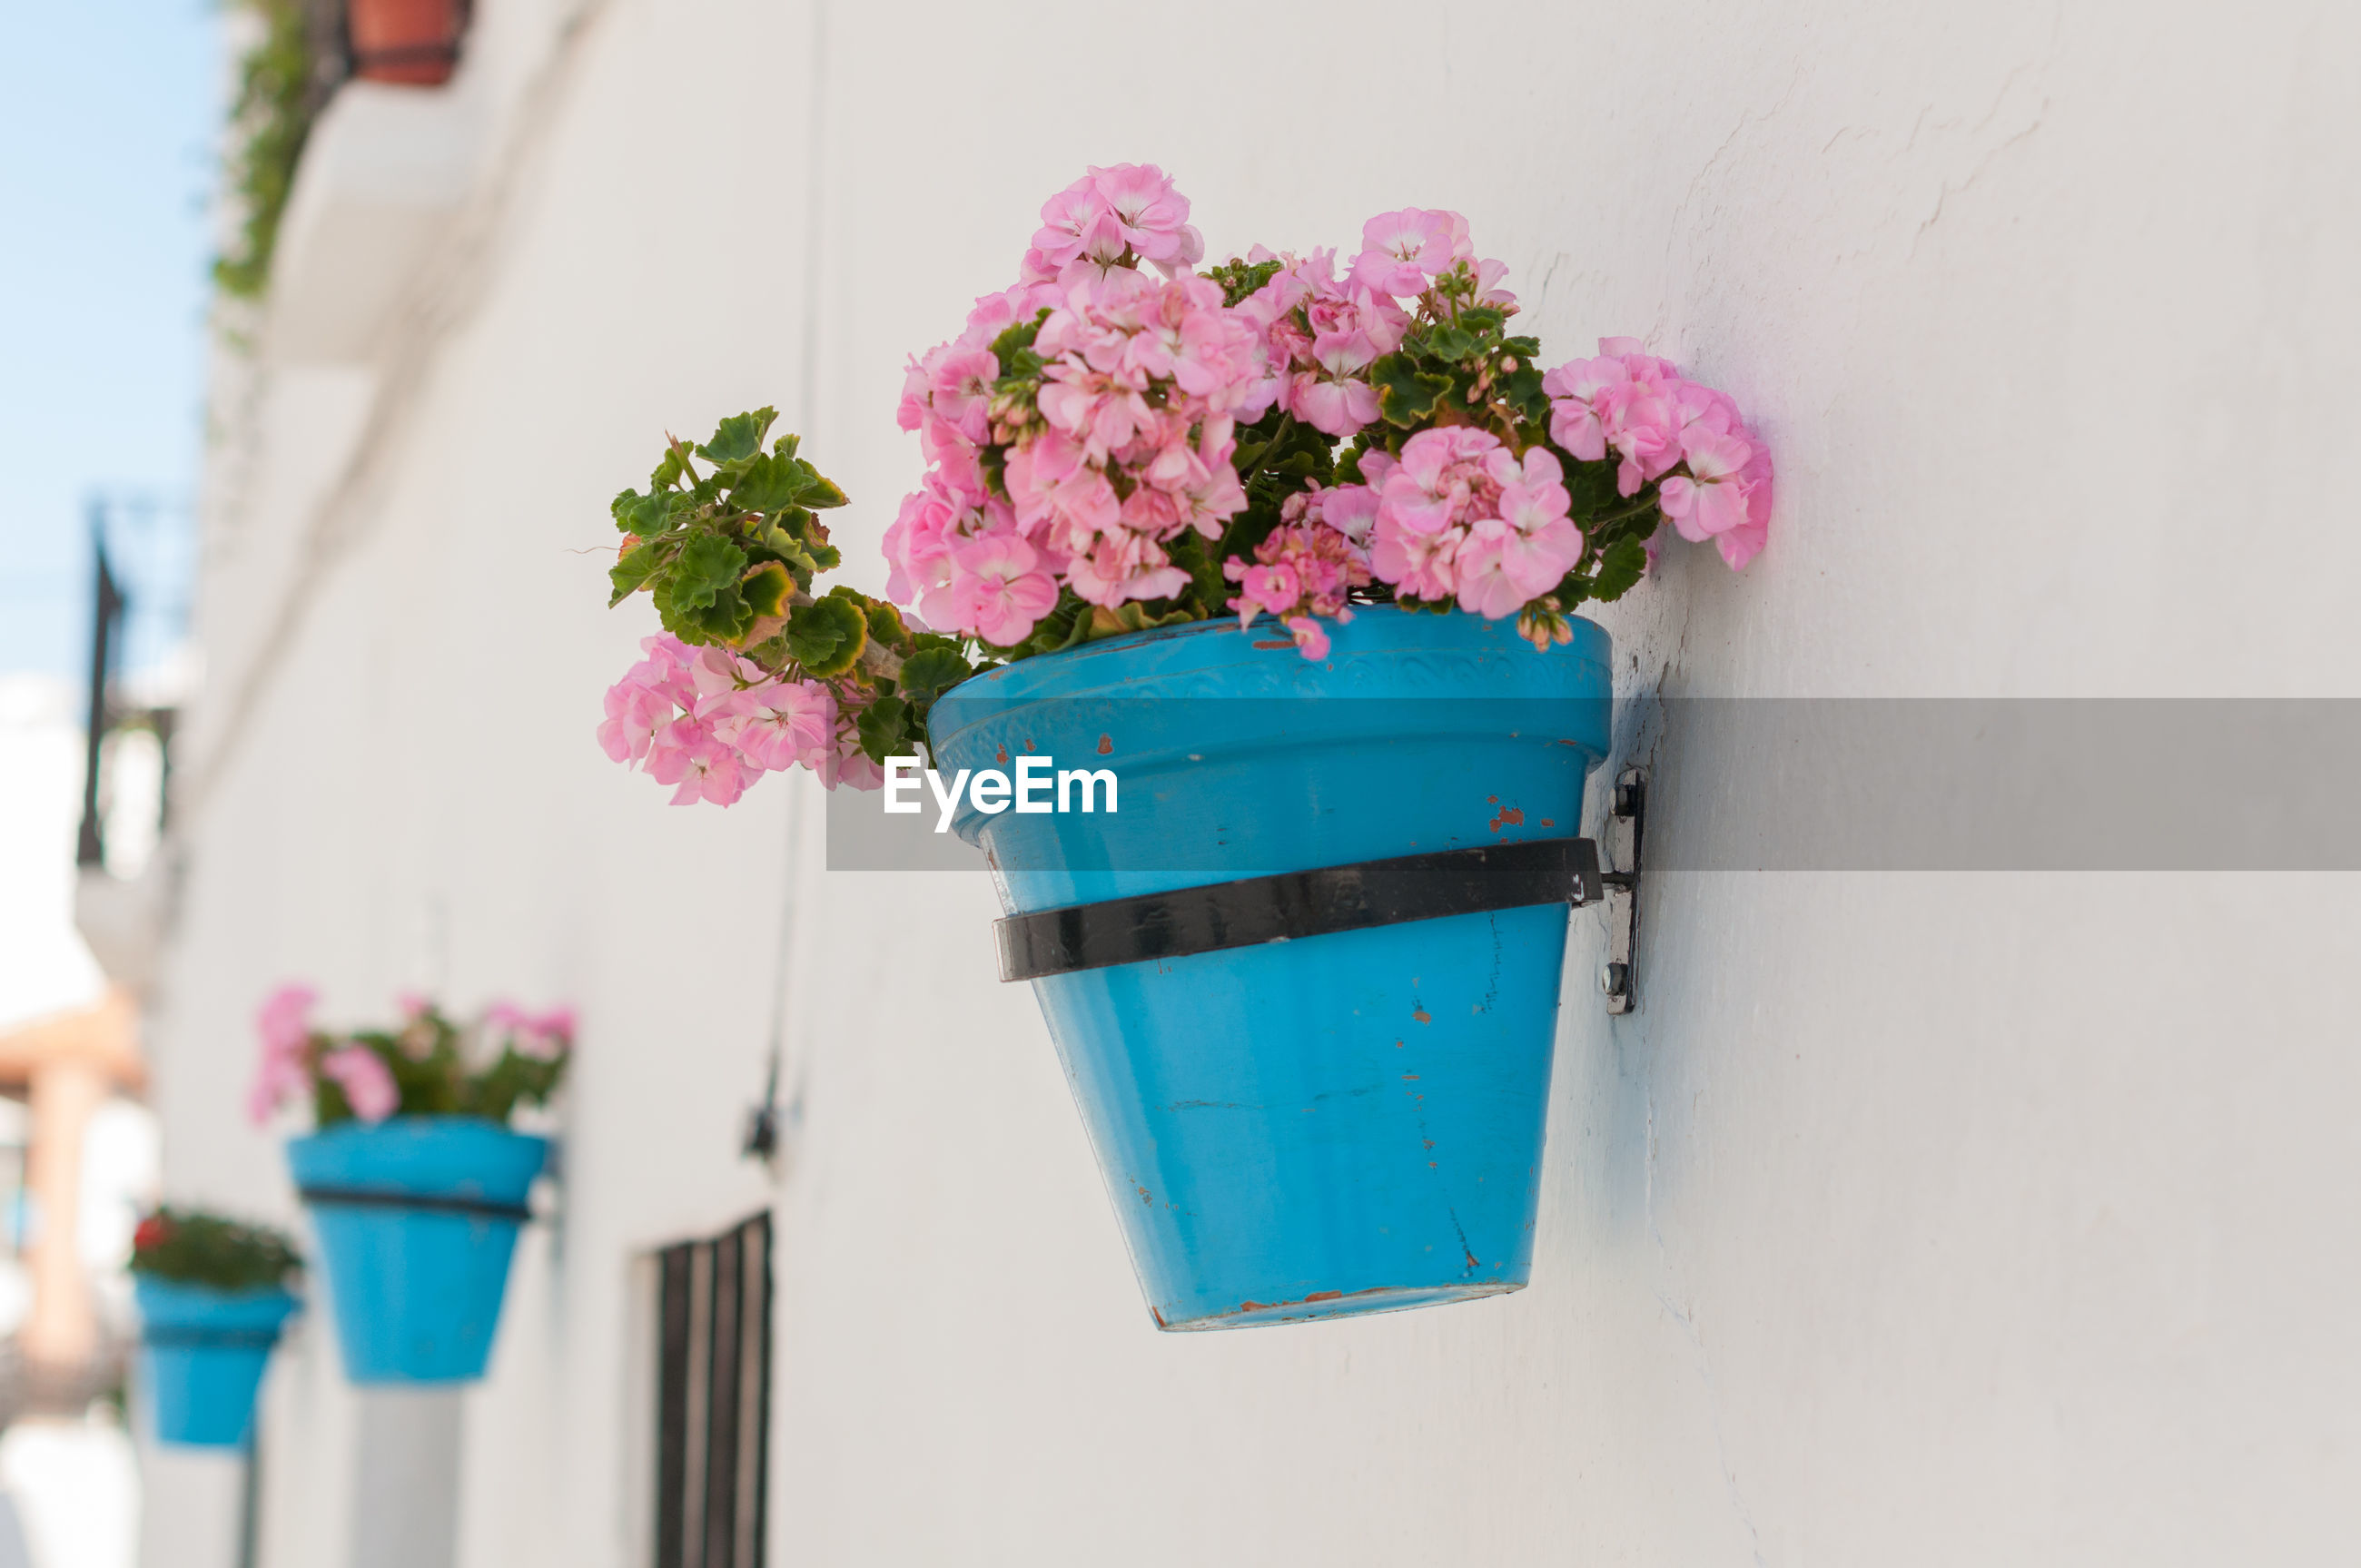 Flower pots mounted on wall